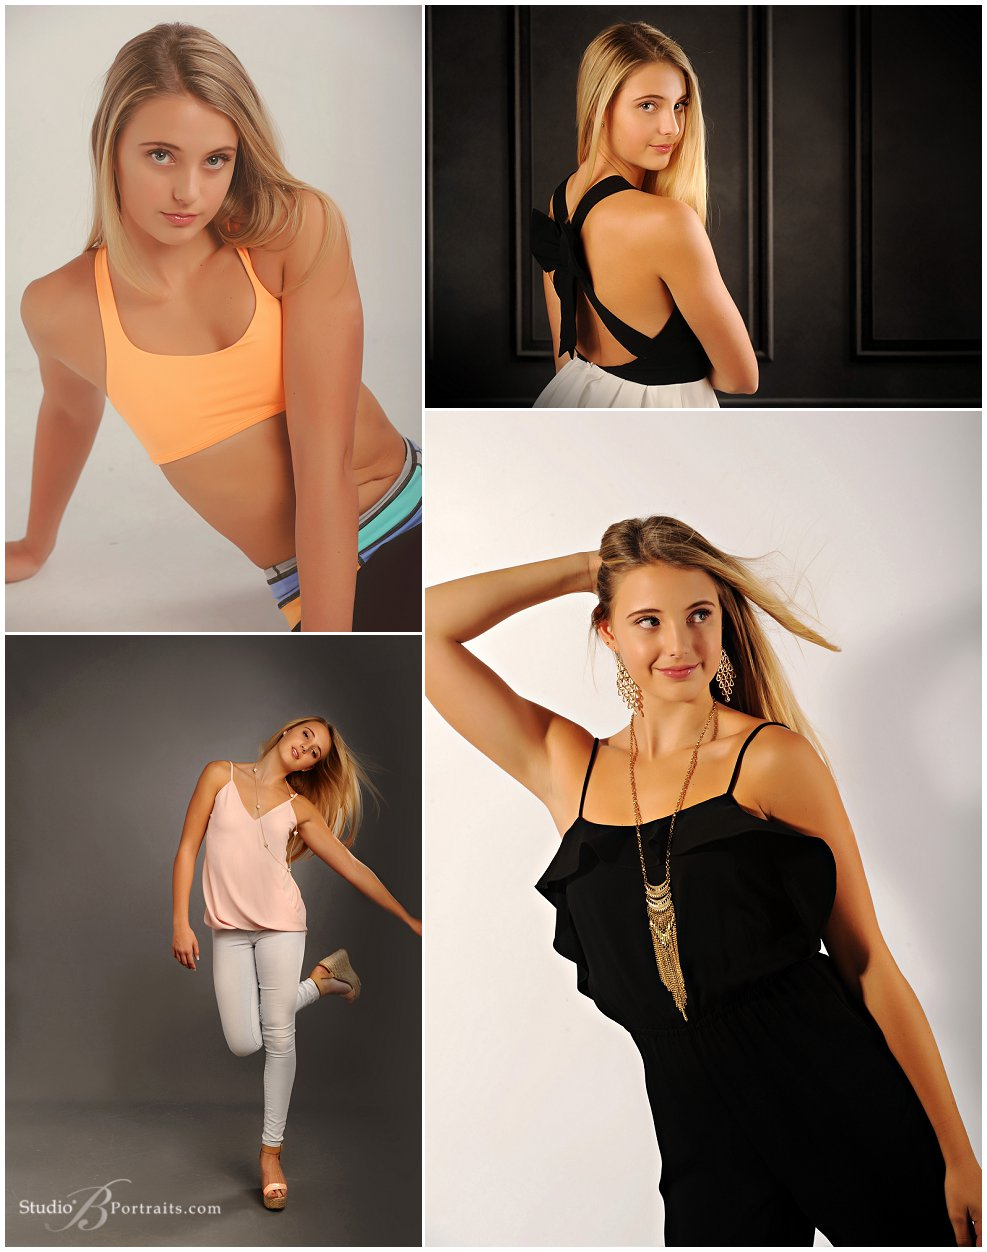 Model portfolio and headshots of 14 year old girl_Studio B Portraits_0284.jpg